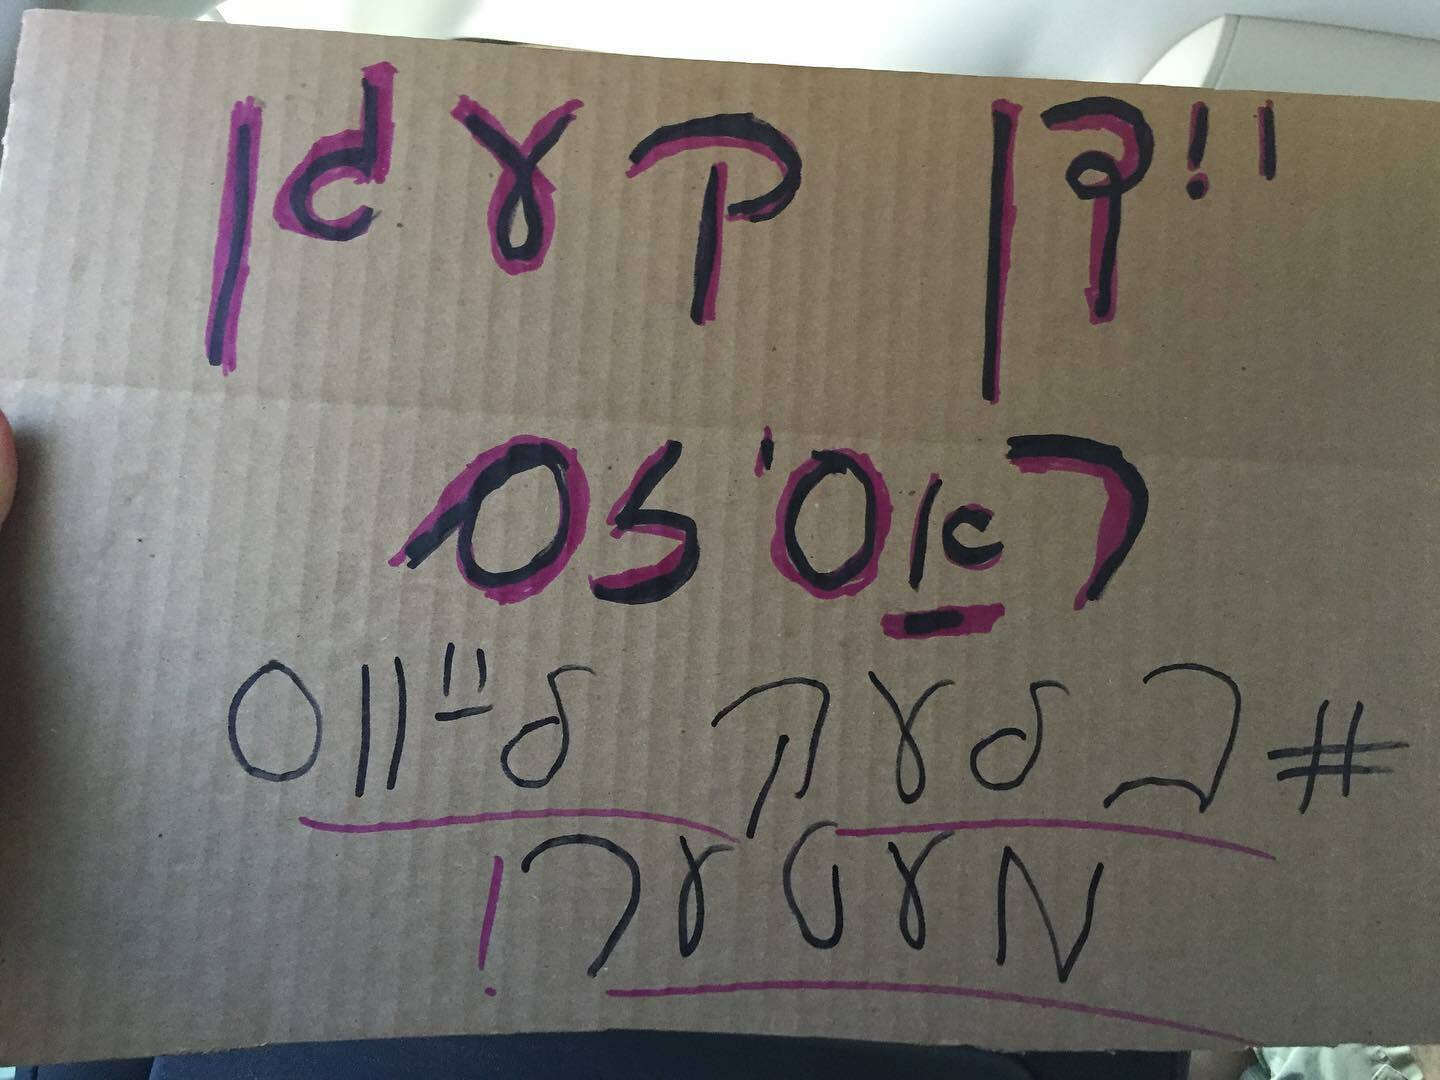 "<p>A sign made by Sarah Biskowitz for two protests in the Mil­wau­kee, <span class=""caps"">WI</span> area in June and July <span class=""numbers"">2020</span>. Pho­to by Sarah&nbsp;Biskowitz.</p>"